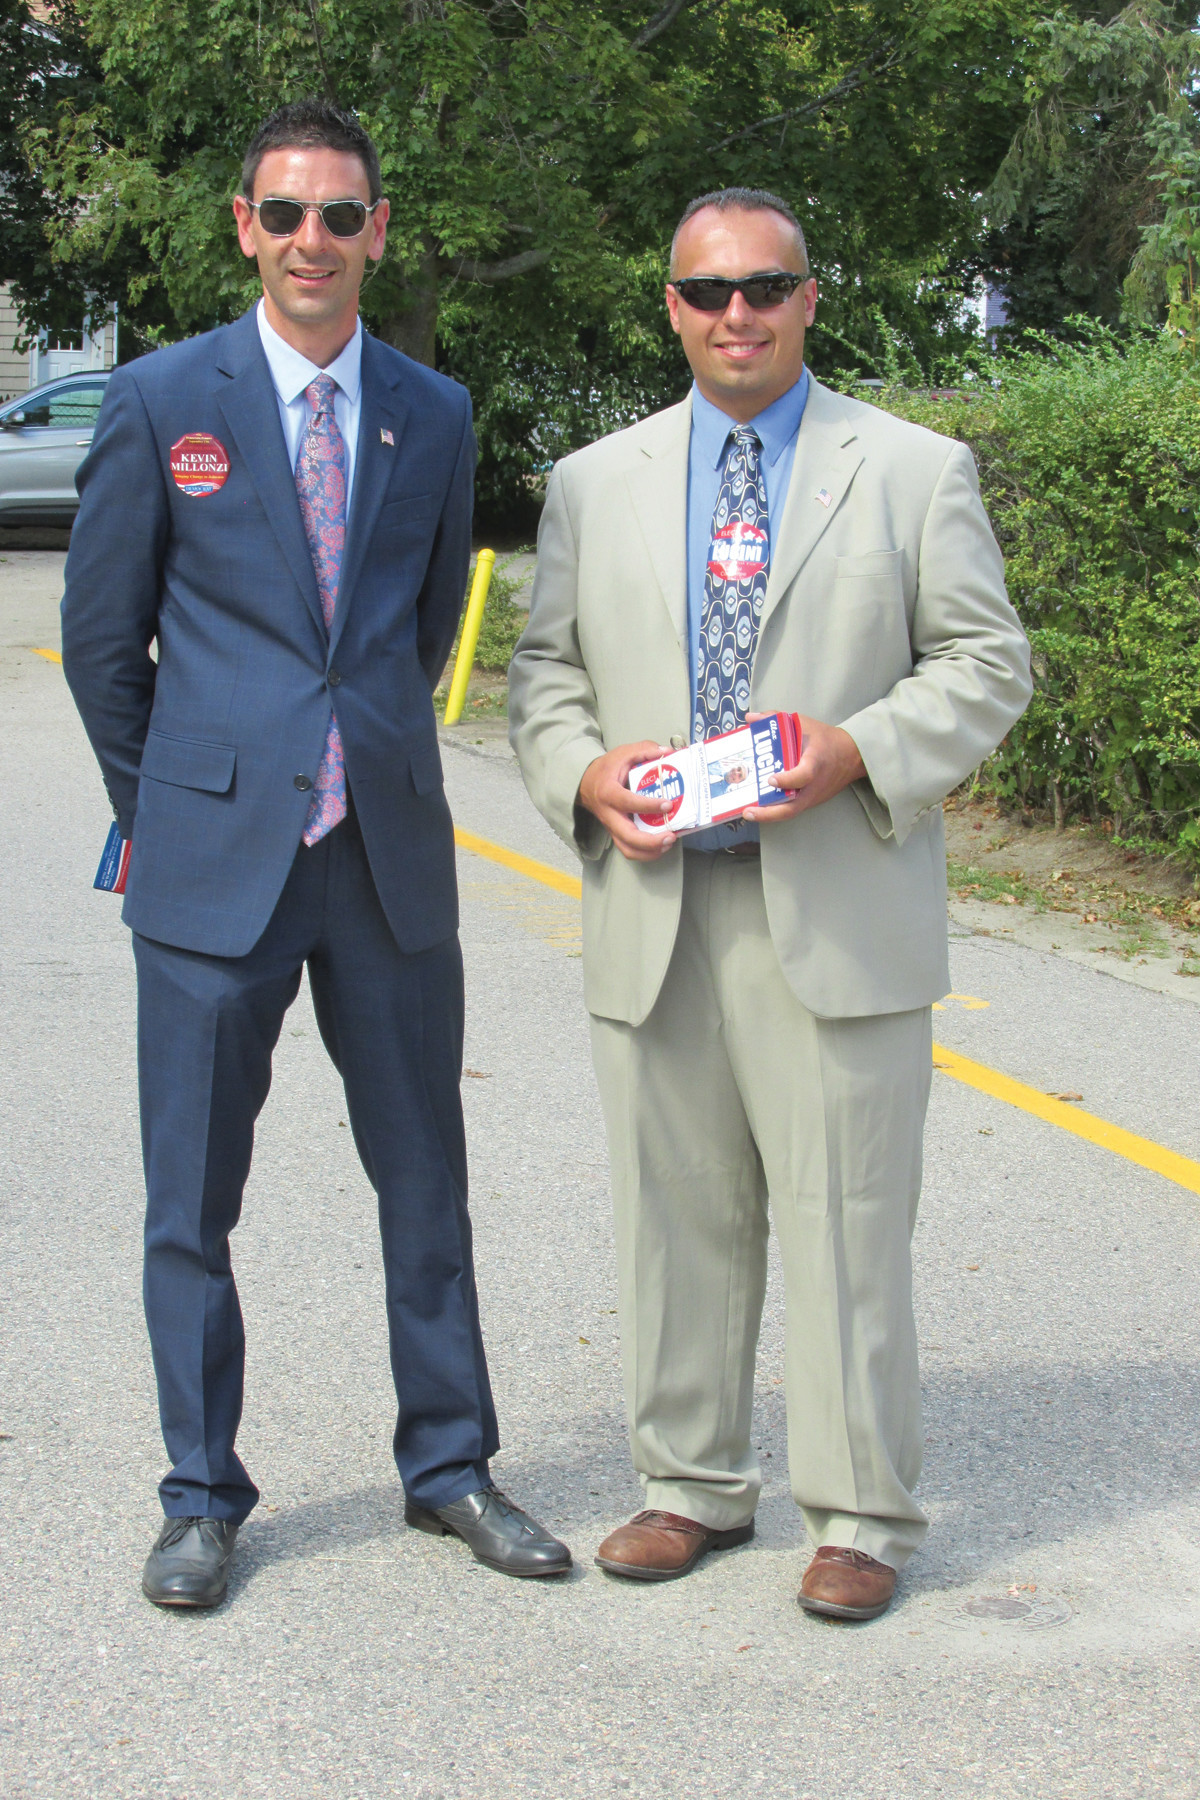 GETTING INVOLVED: District 4 Town Council candidate Kevin Millonzi and School Committee candidate Alexander Lucini share a moment outside Graniteville School.